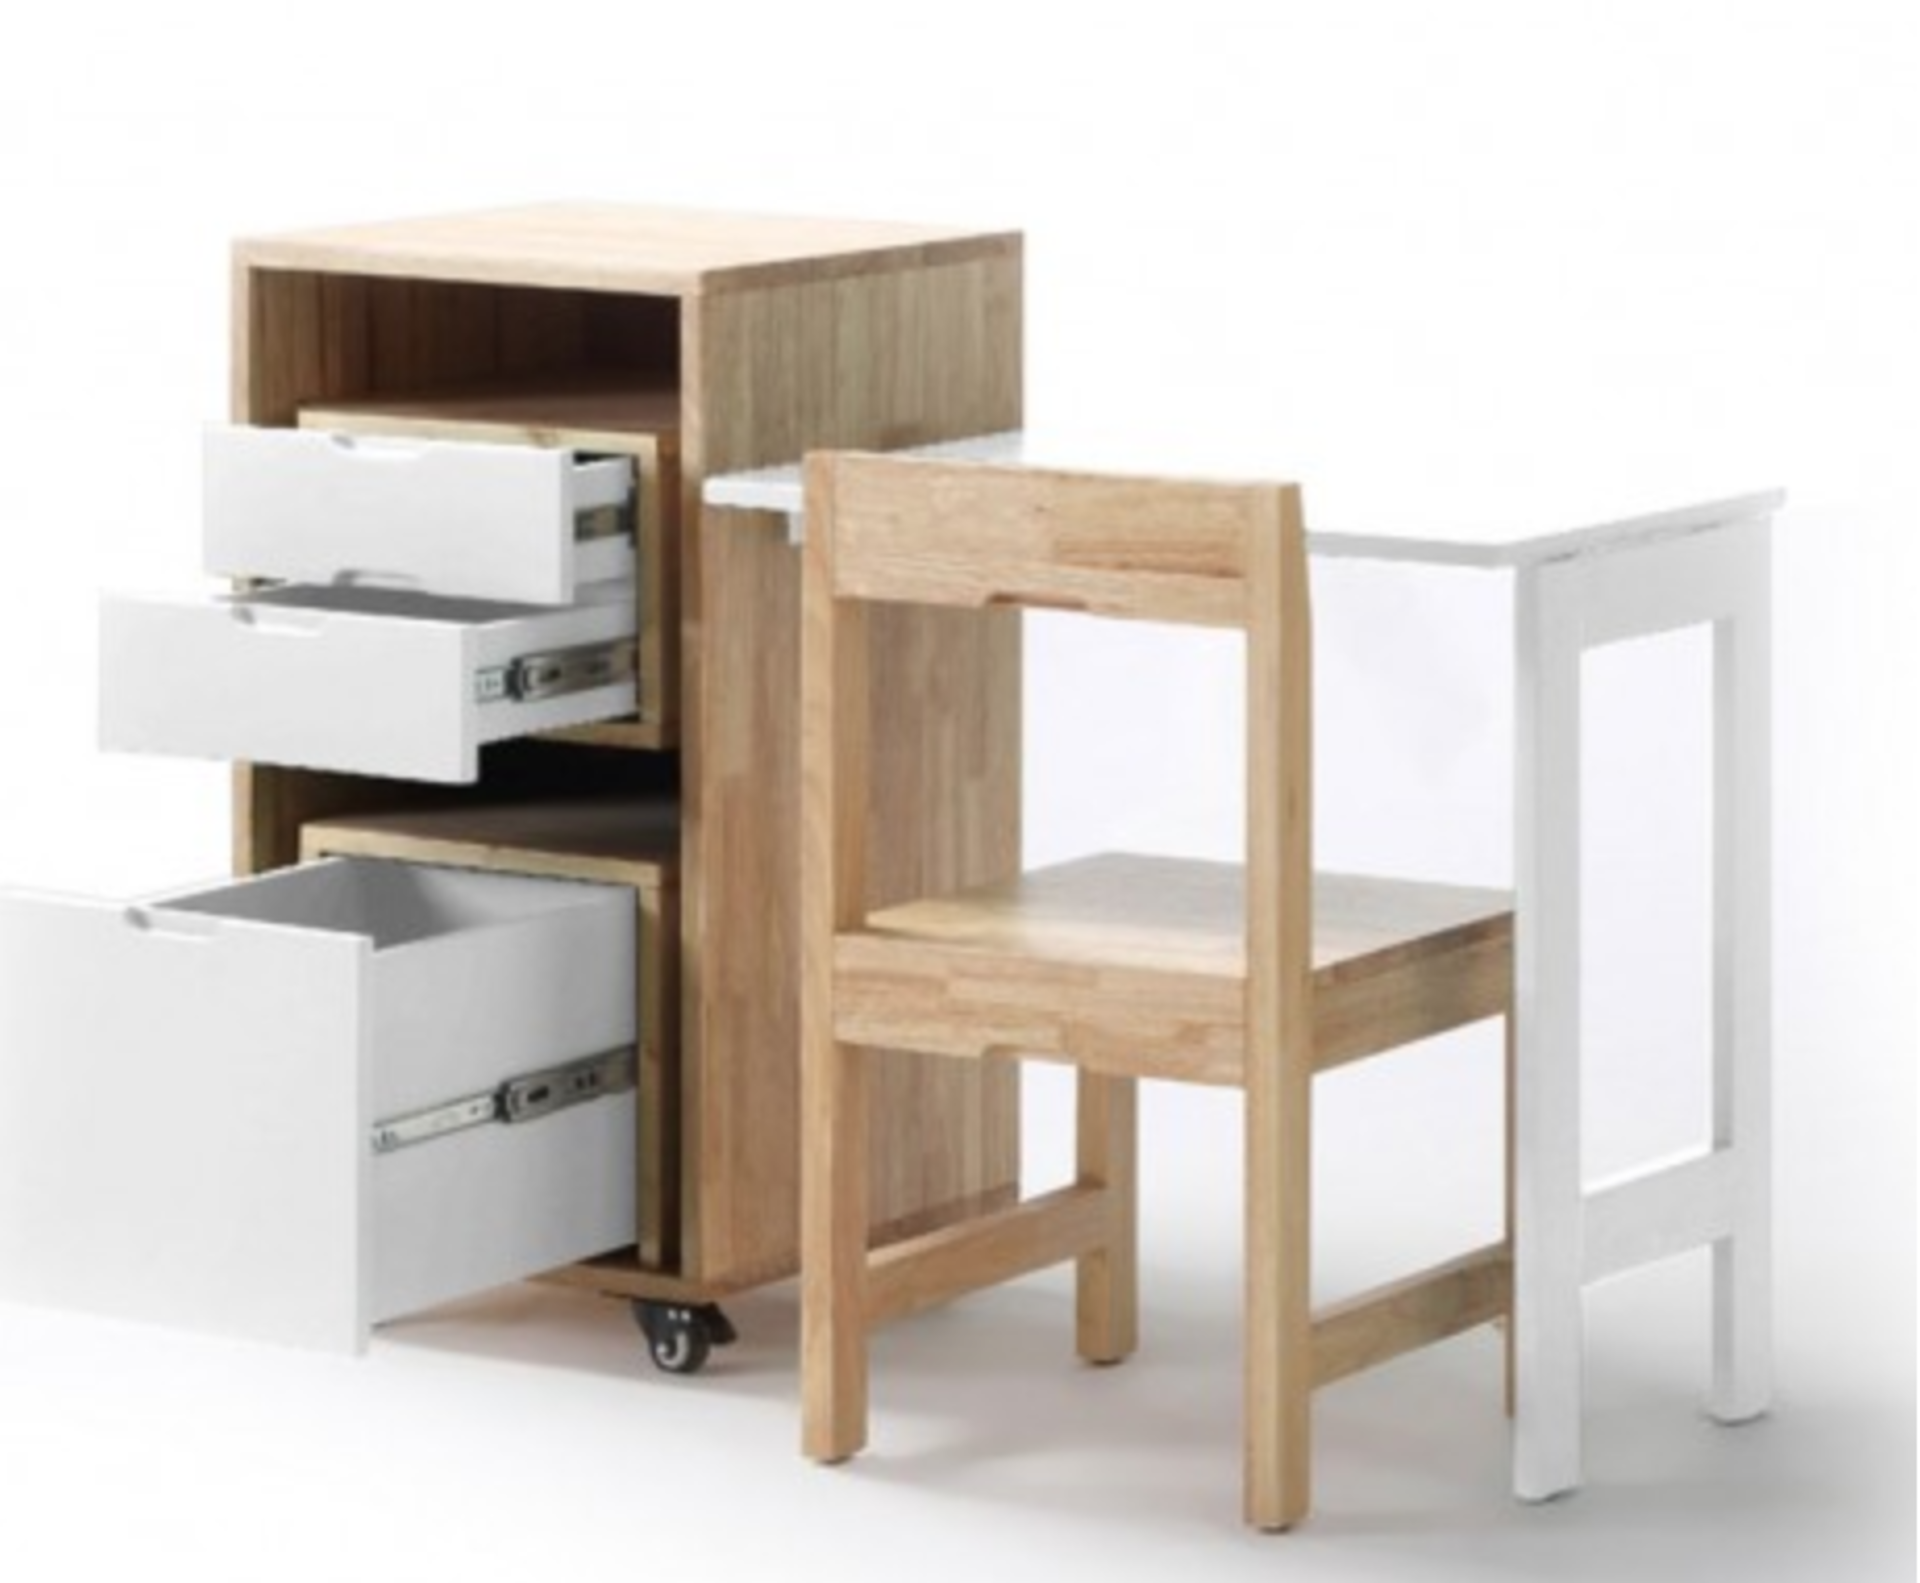 Space Saving Furniture That May Just Solve Decor Problems Youd Didn't Know You Had